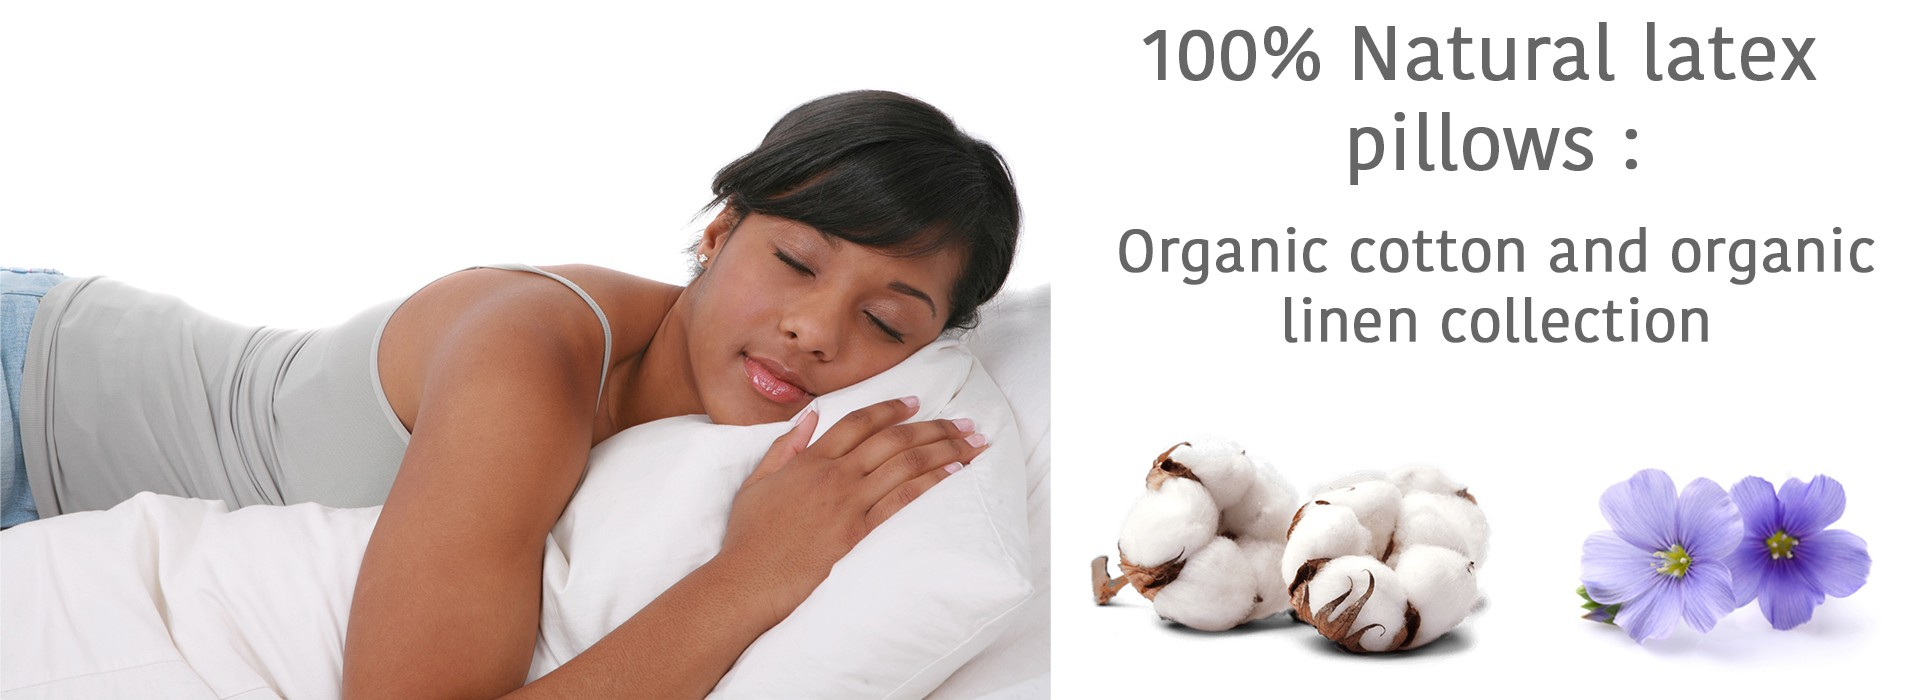 100% natural organic latex pillows